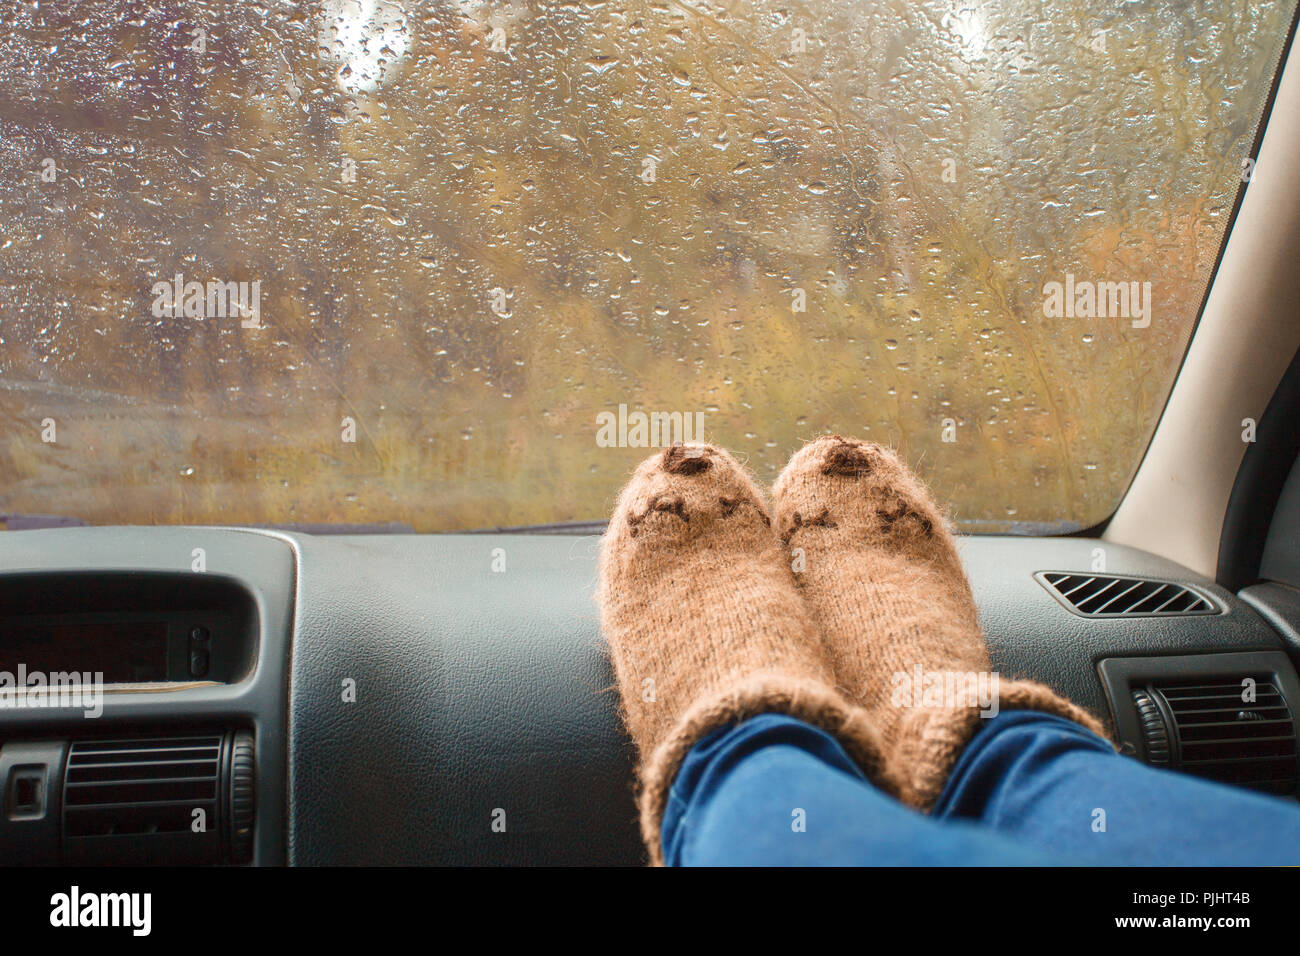 Woman legs in warm cute socks on car dashboard. Drinking warm tee on the way. Fall trip. Rain drops on windshield. Freedom travel concept. Autumn week - Stock Image